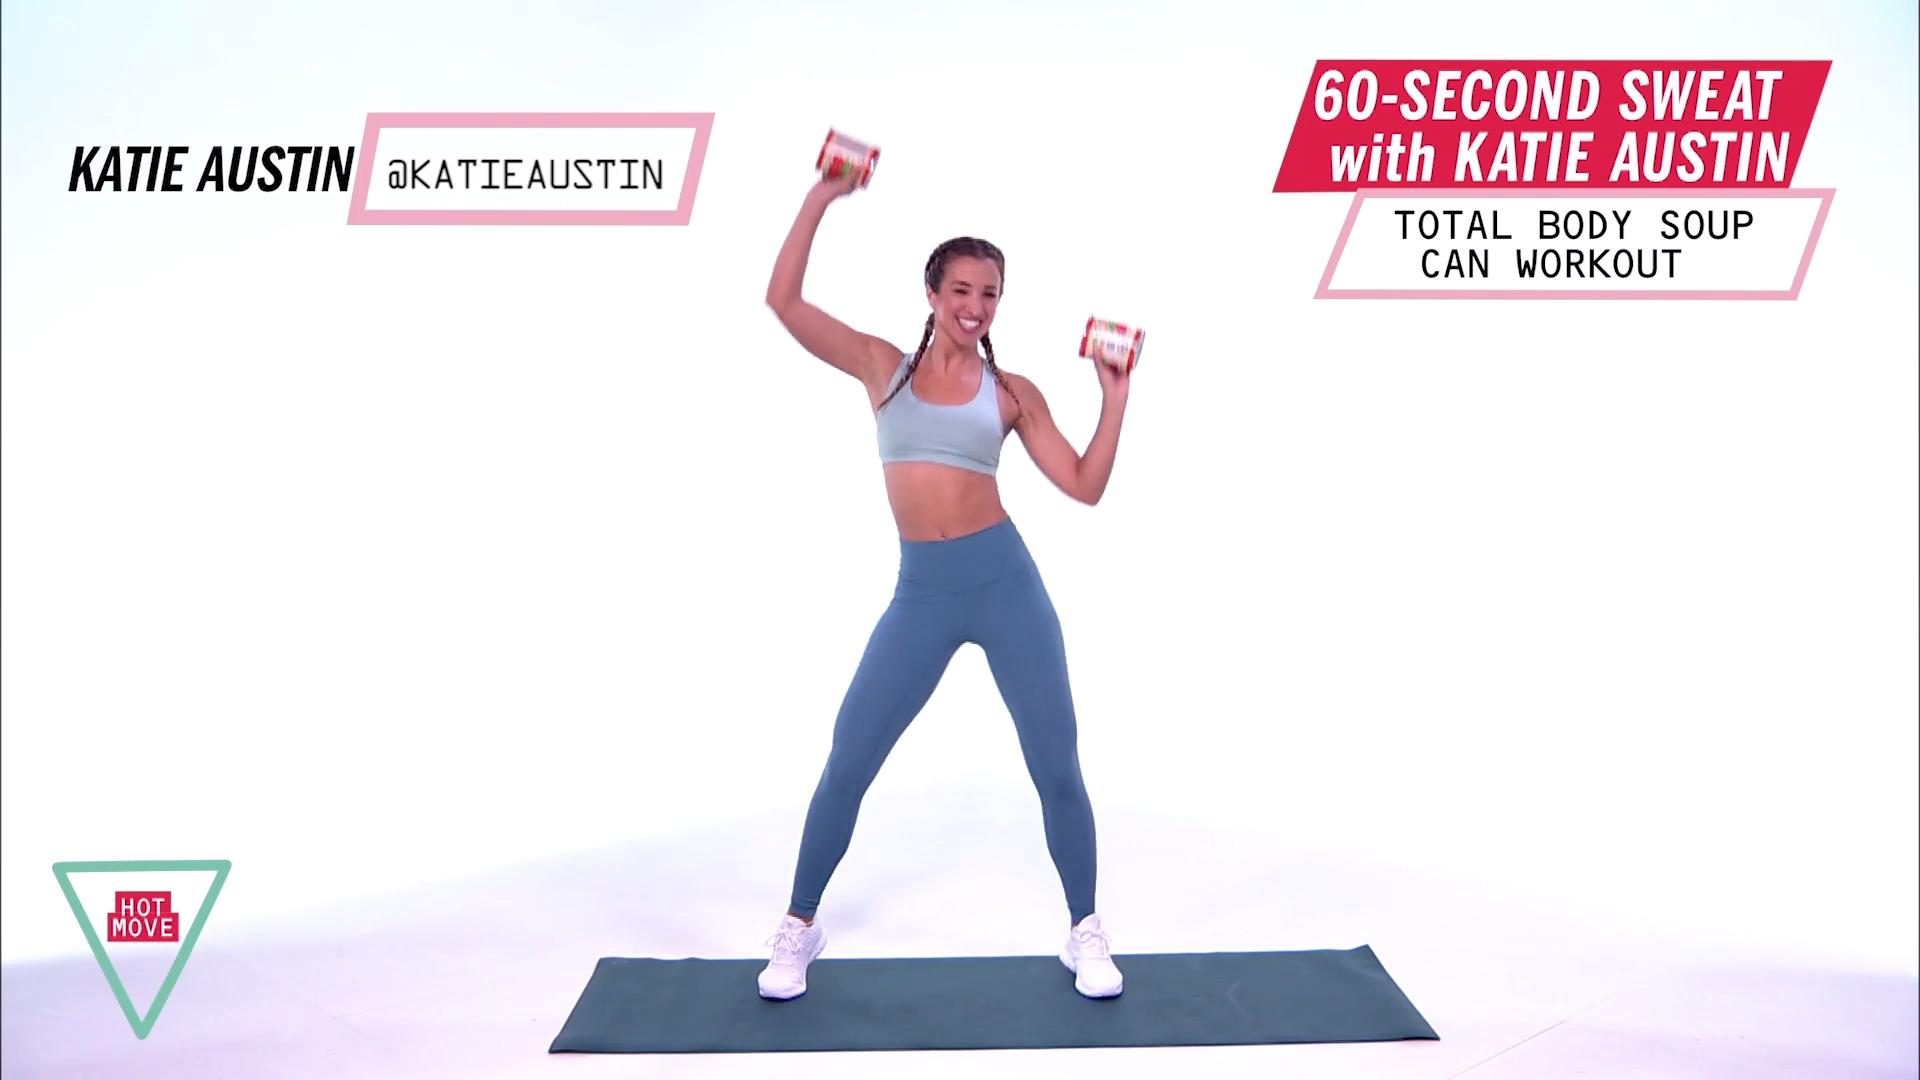 This Katie Austin Full-Body Workout Only Requires 60 Seconds and 2 Soup Cans